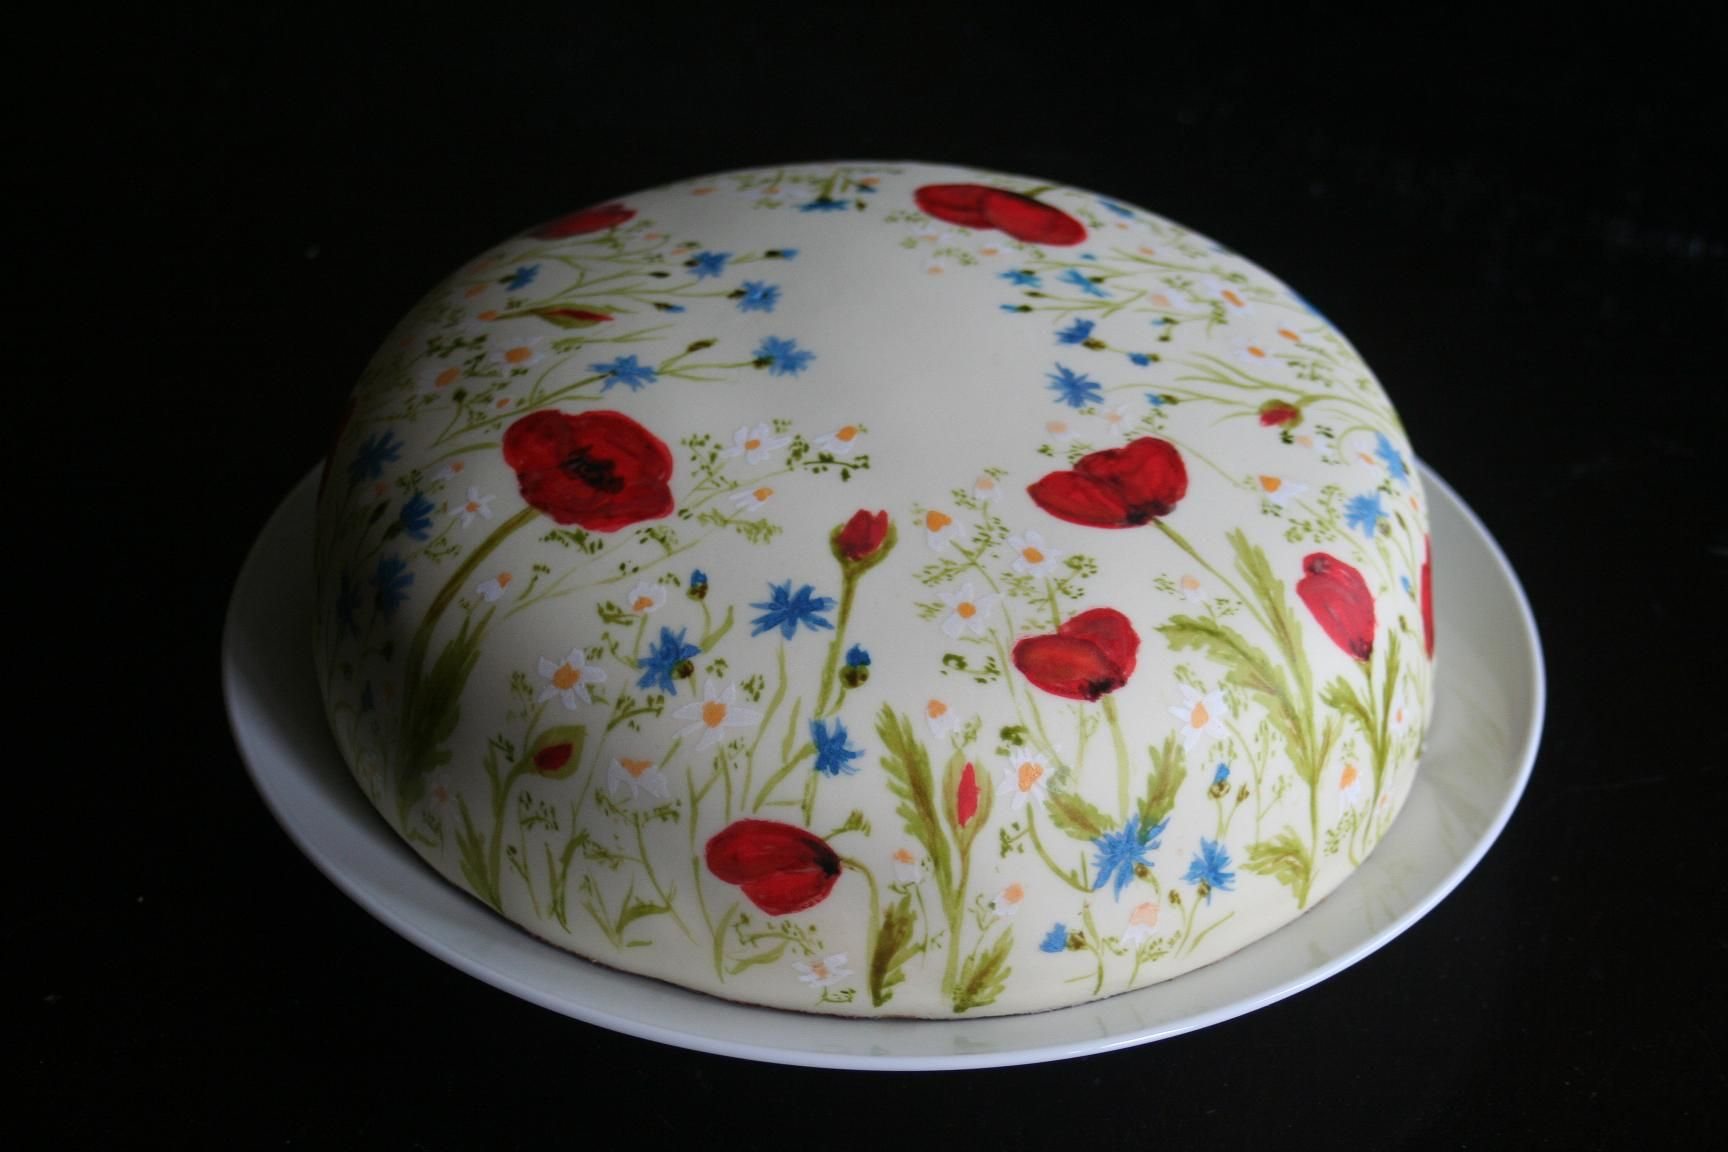 fondant torte mit gemalten wiesenblumen fondant cake with painted wild flowers meine torten. Black Bedroom Furniture Sets. Home Design Ideas